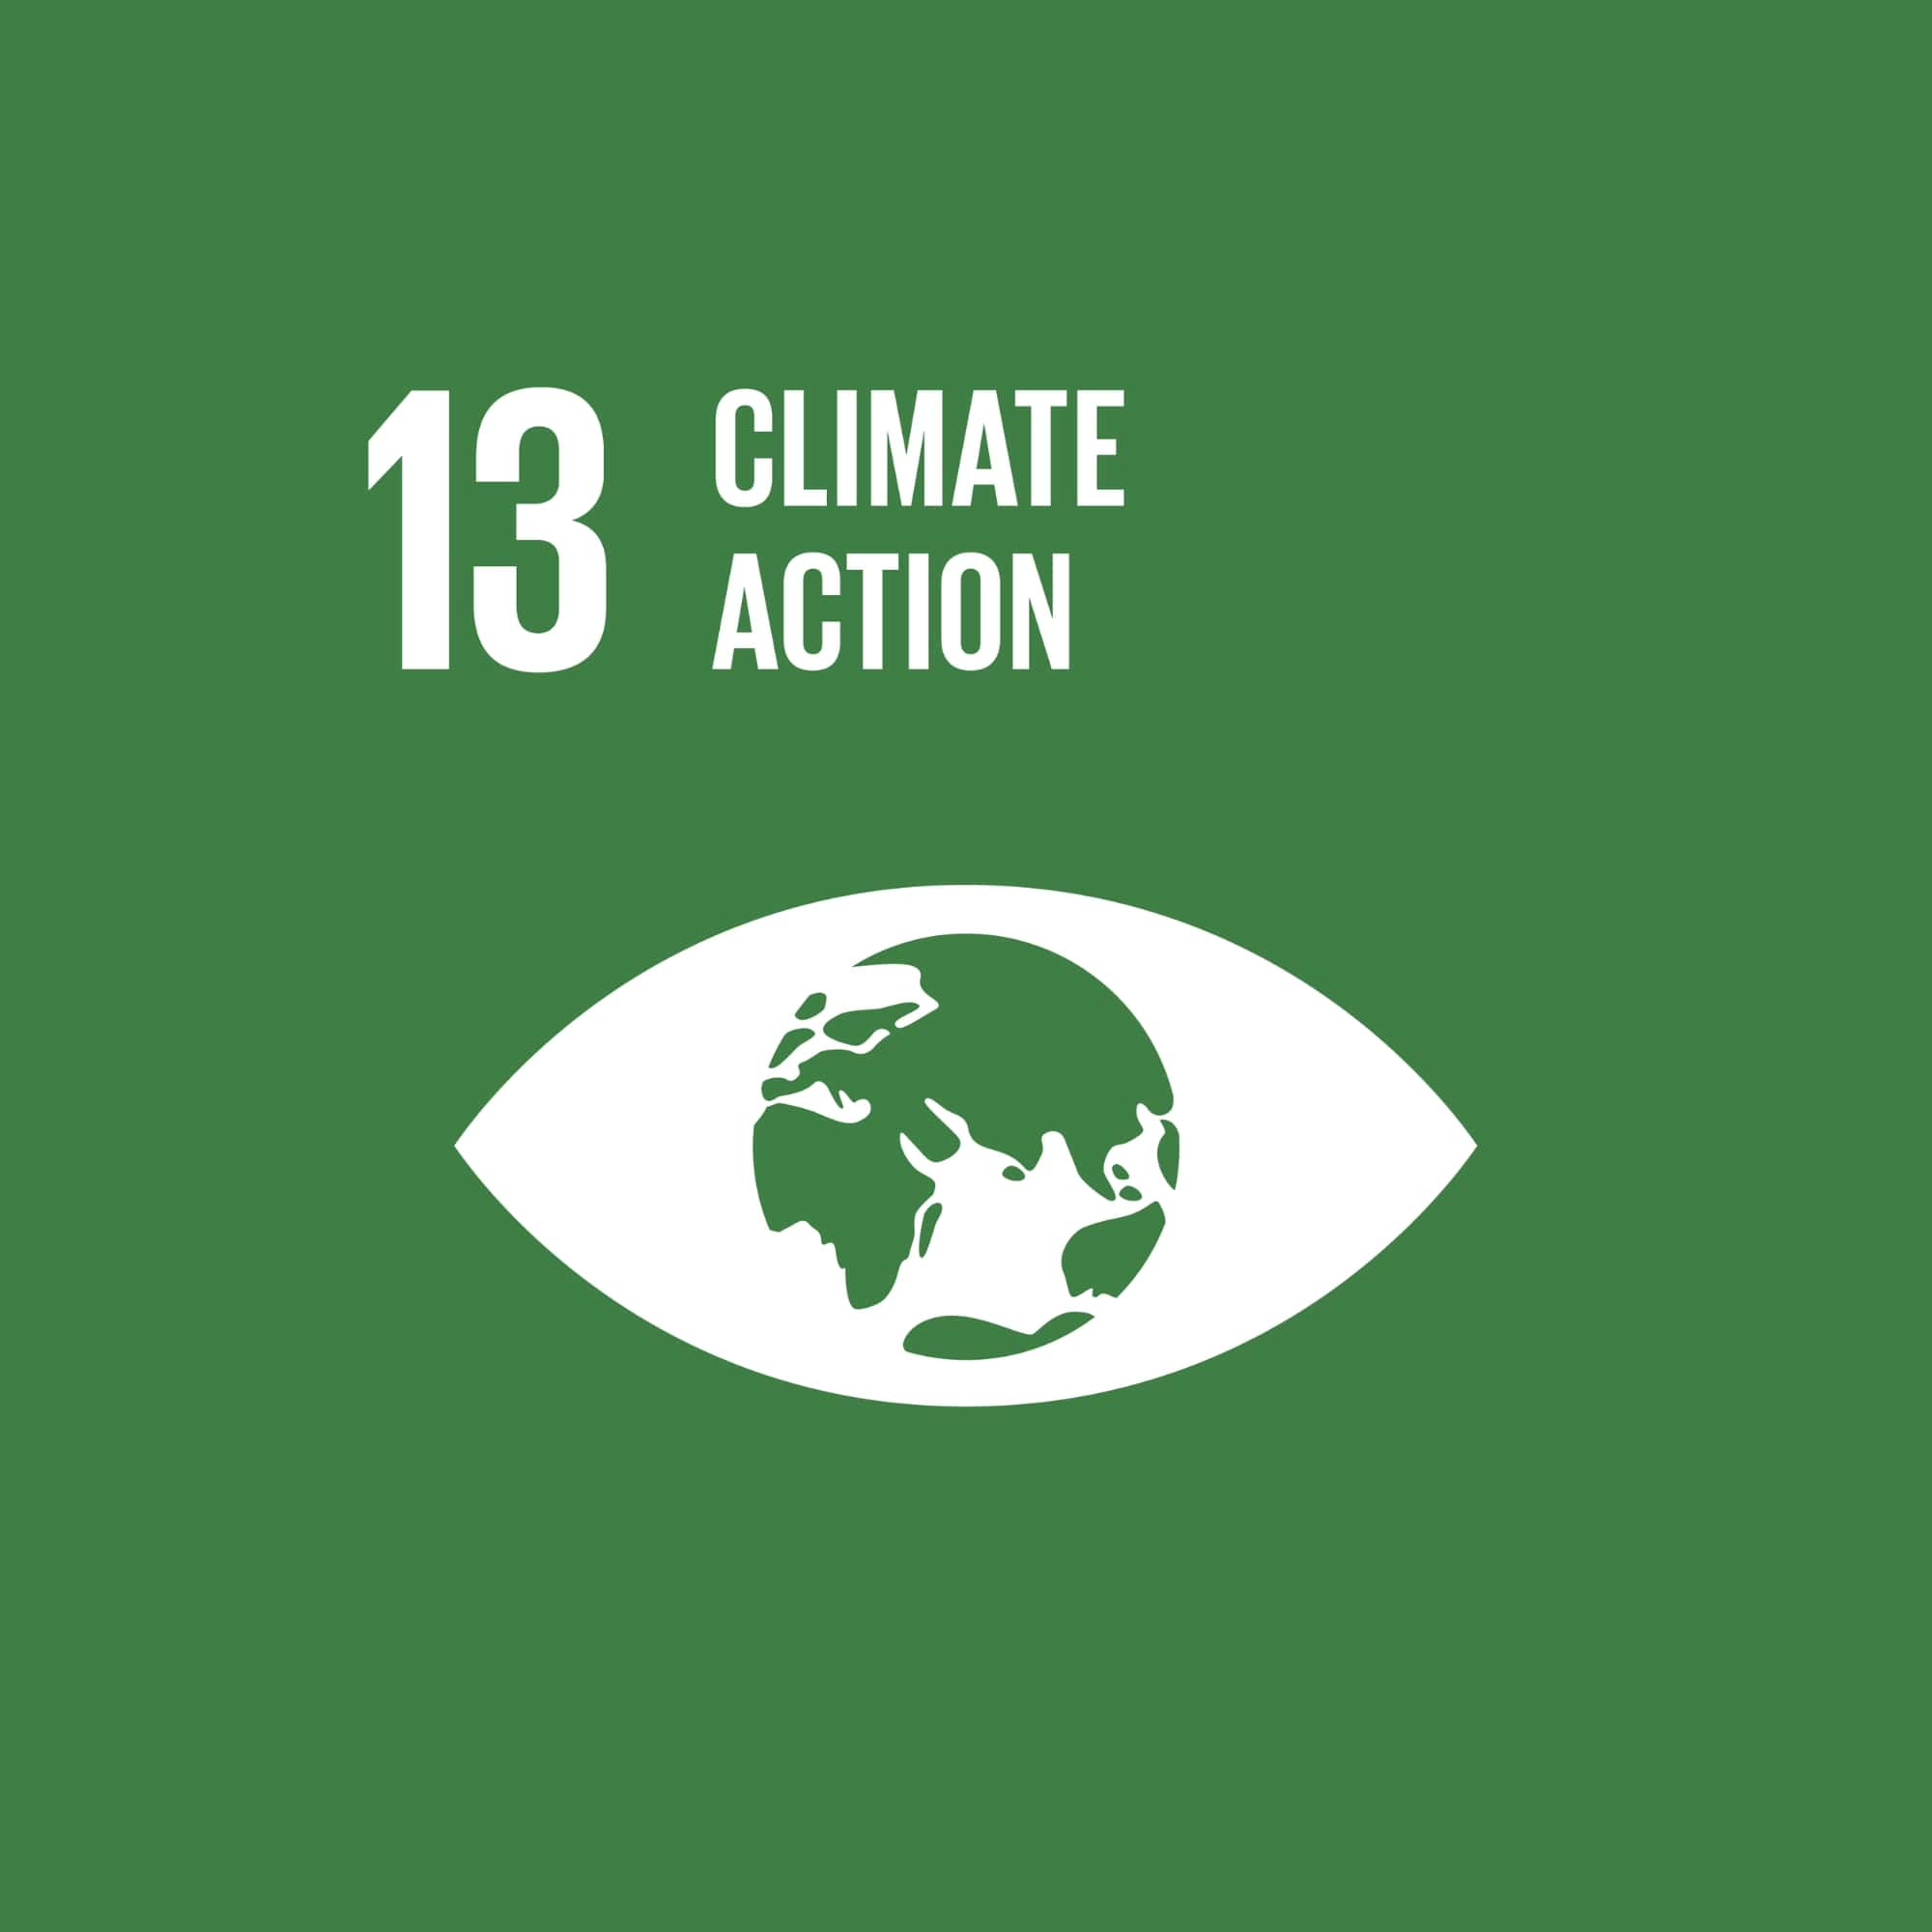 GLOBAL SUSTAINABILITY : CLIMATE ACTION